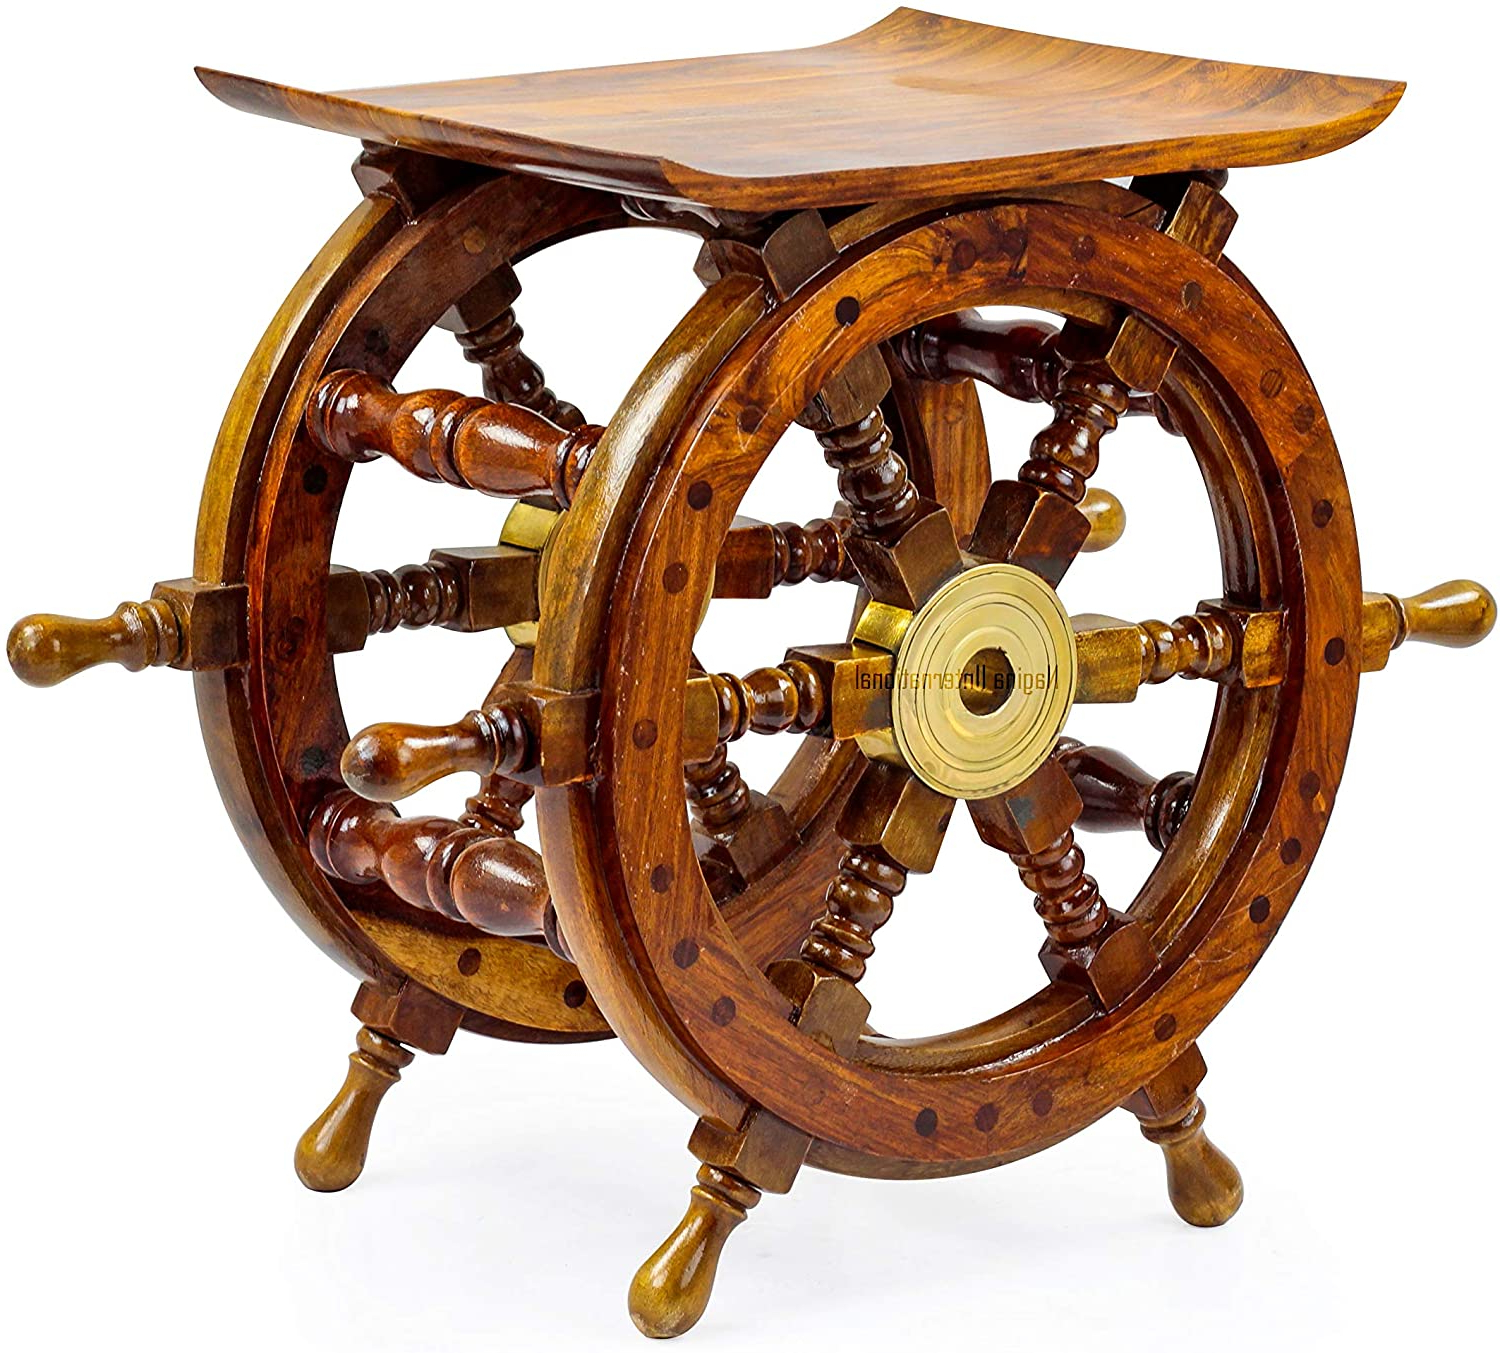 Pirate's Antique Brass Hub Motiff (18 Inches) With Regard To Brown/brass Wood Ship Wheel Wall Décor (View 14 of 20)